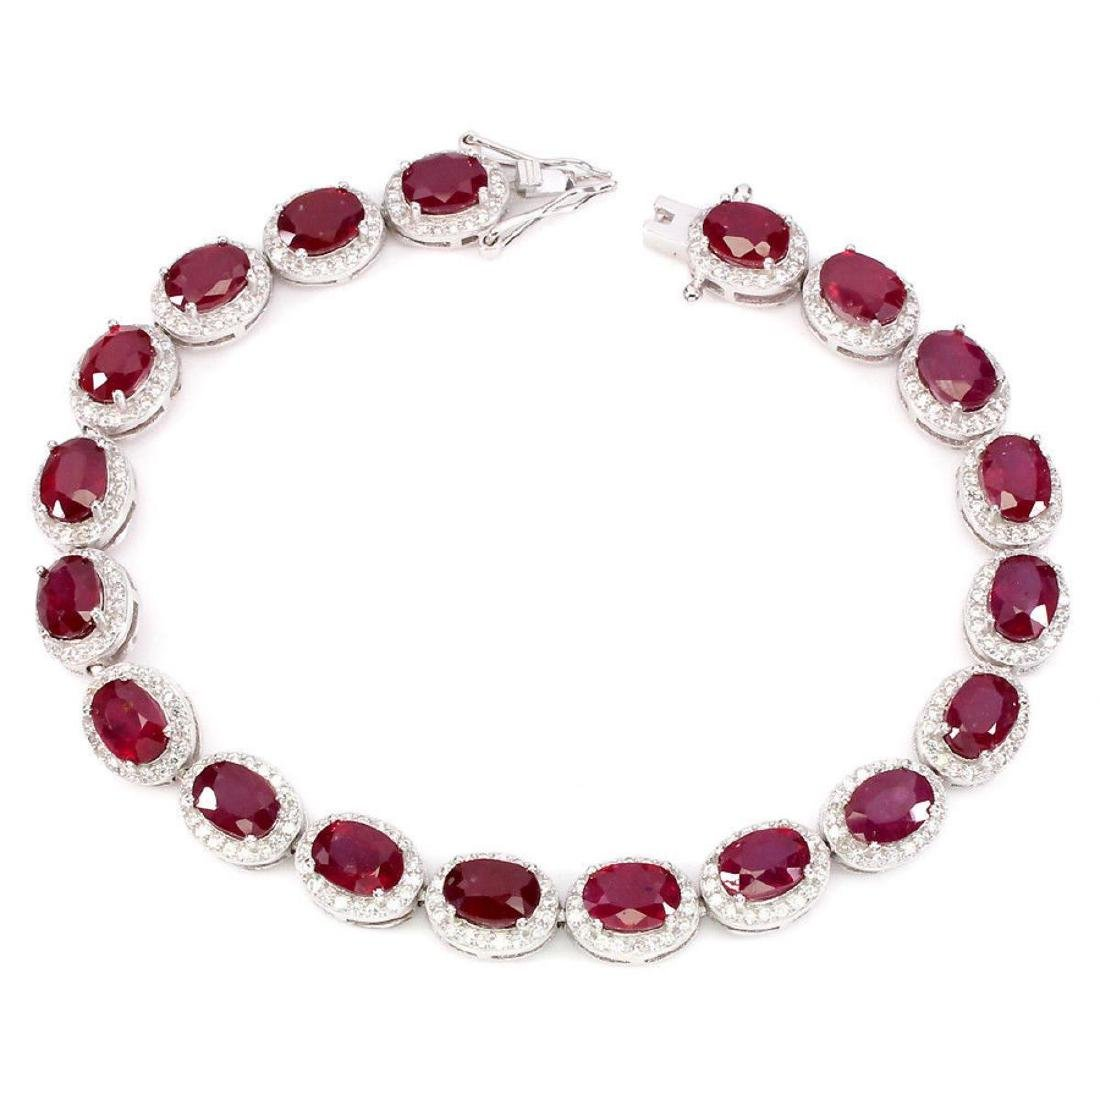 Natural Oval 7x5 Mm Blood Red Ruby Bracelet - 2